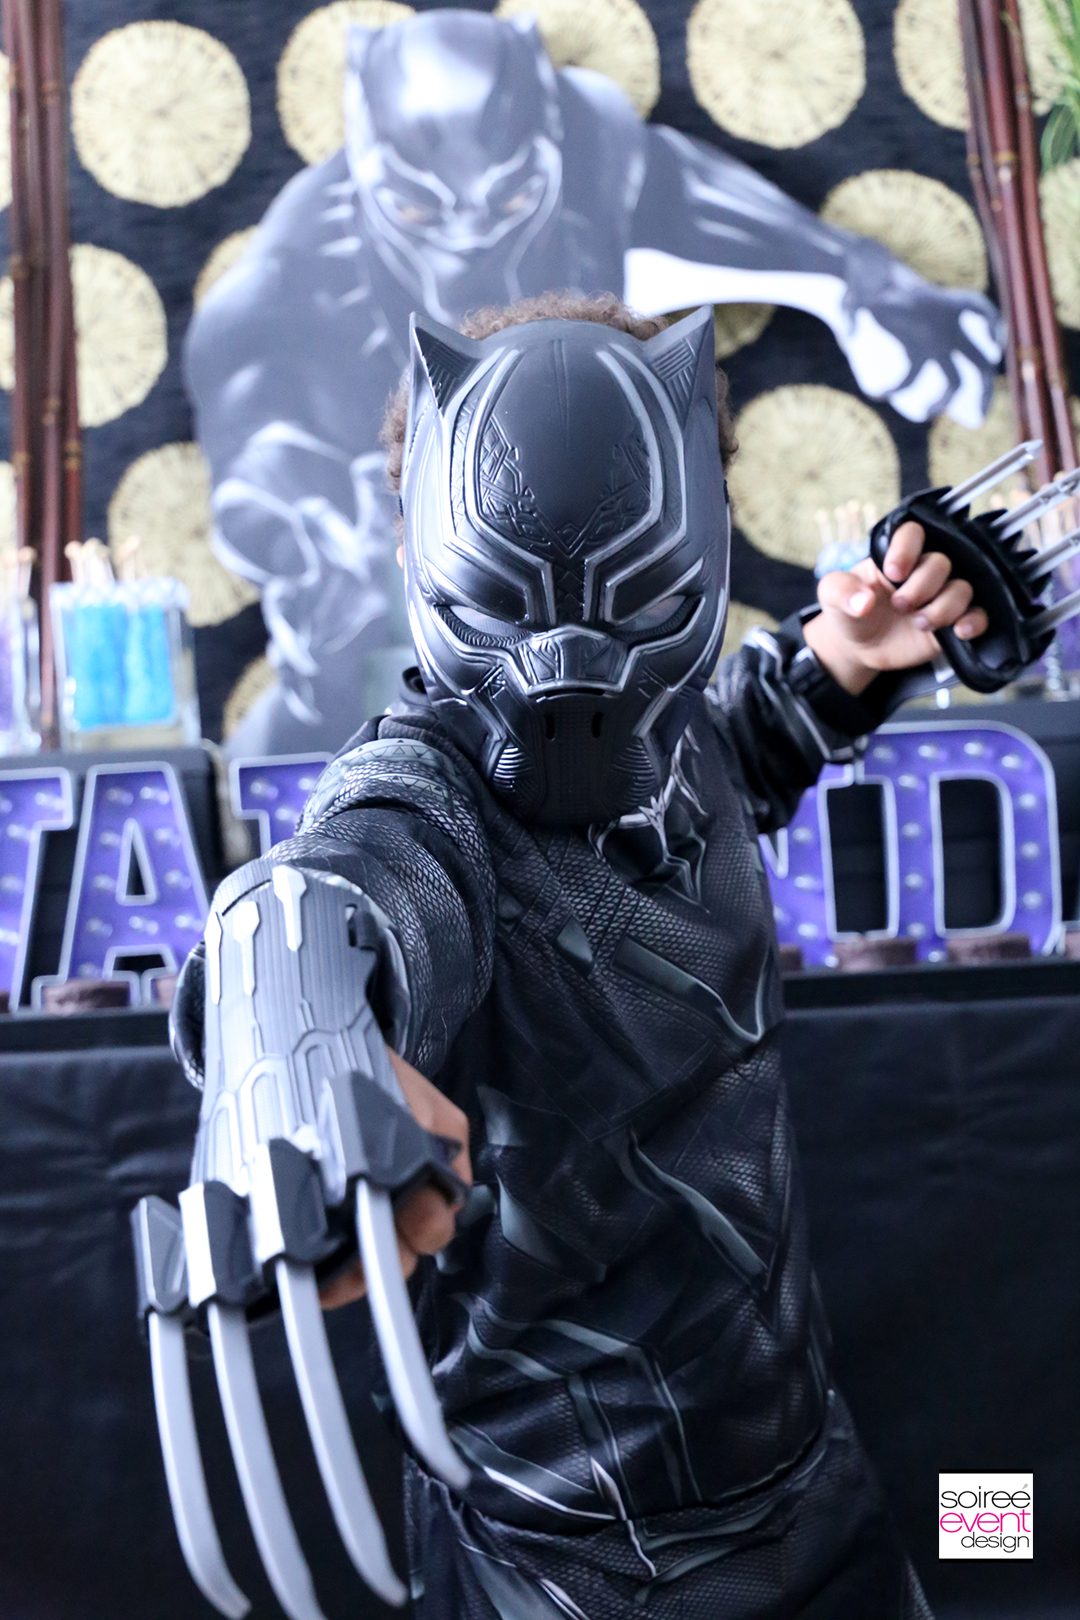 Black Panter Party Ideas - Black Panther Costumes are perfect to set the scene for a MARVEL Black Panther Party